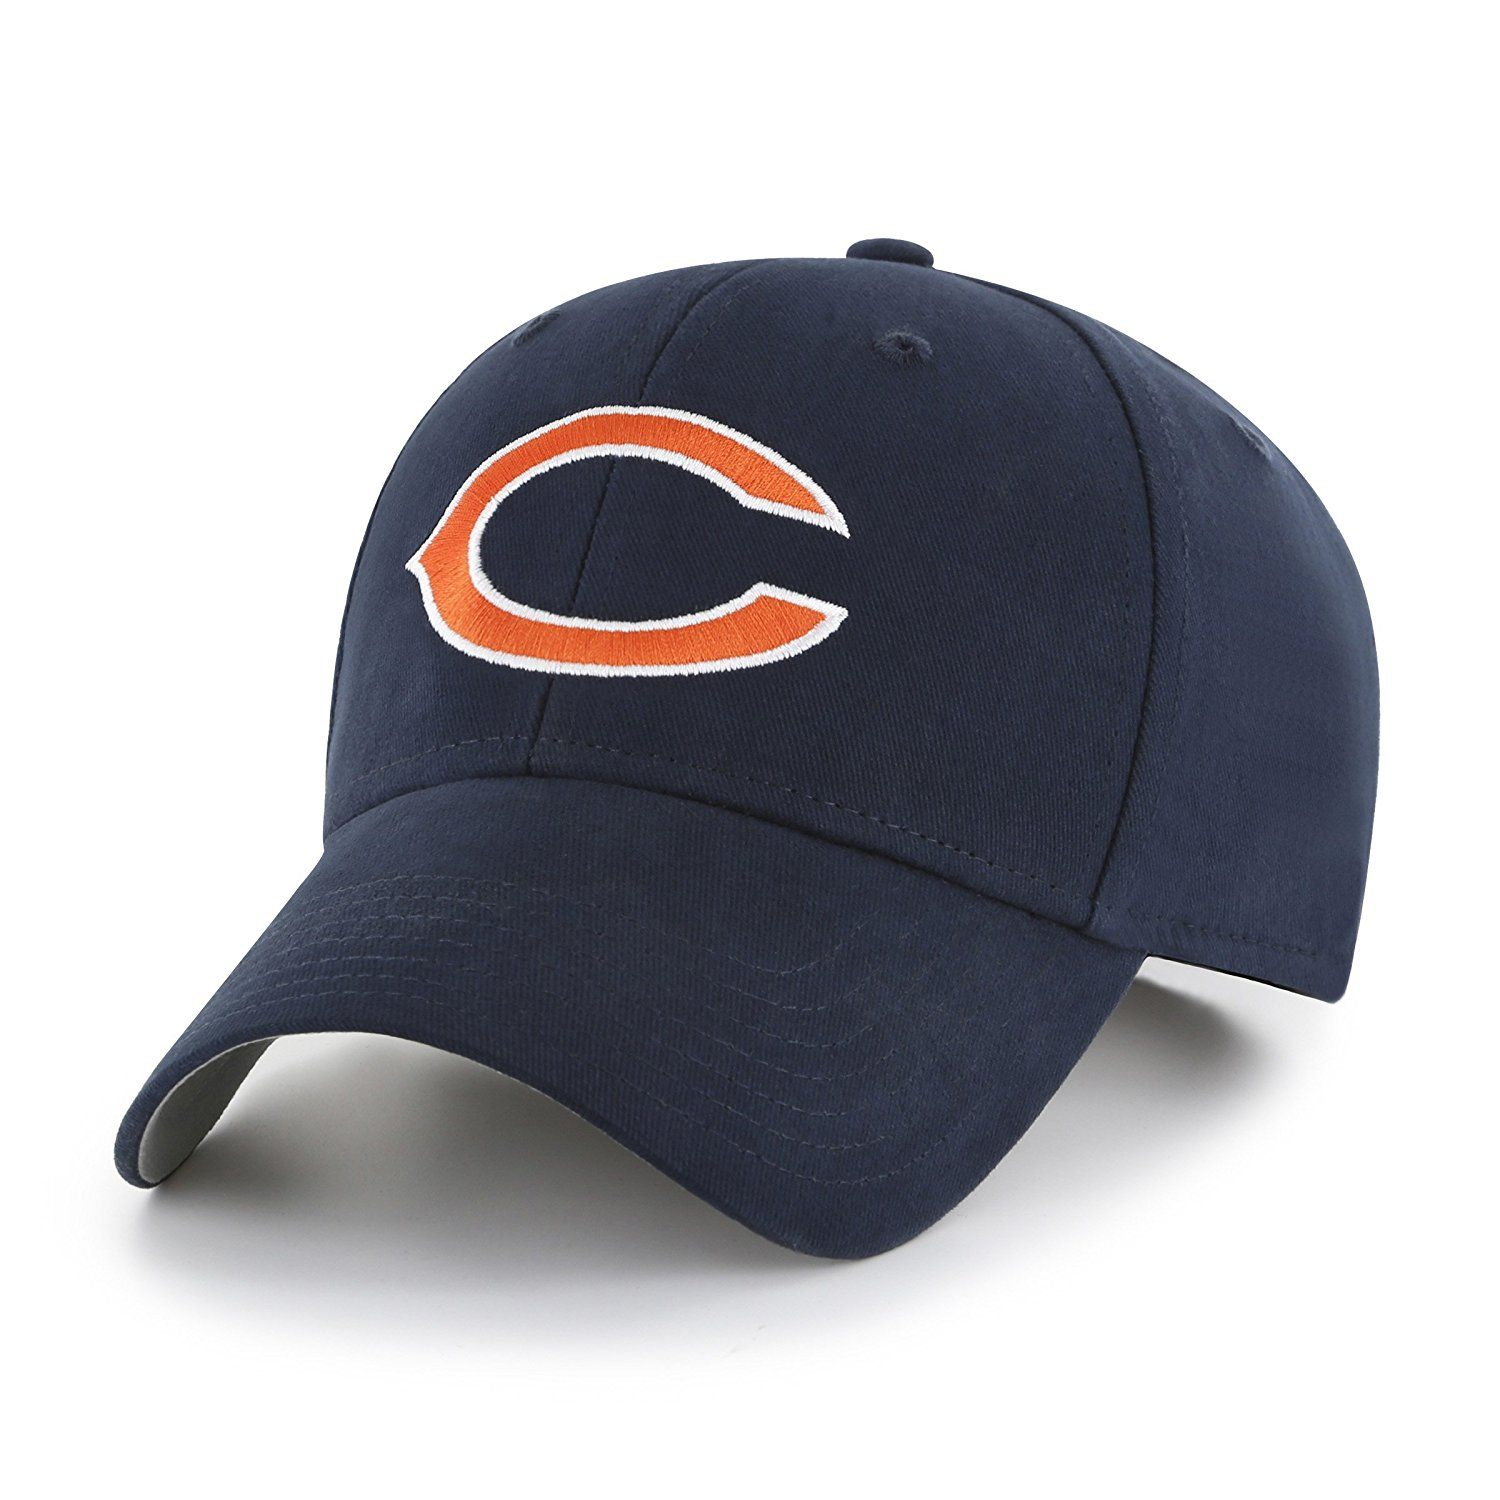 6d7b11cf0f2fe1 ... coupon code chicago bears nfl toddler cinch ots all star adjustable hat  price 13.00 ff15e 411dd